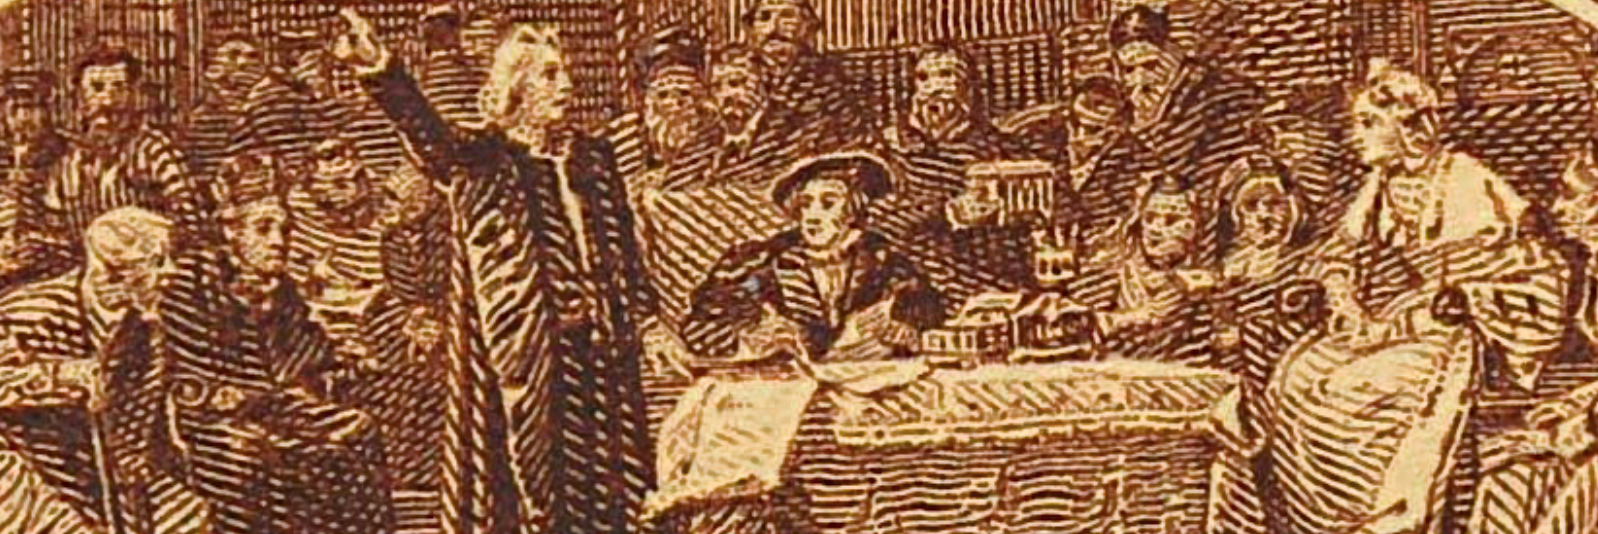 Commemoration of Columbus' Solicinting aid from Isabella and Ferd.png